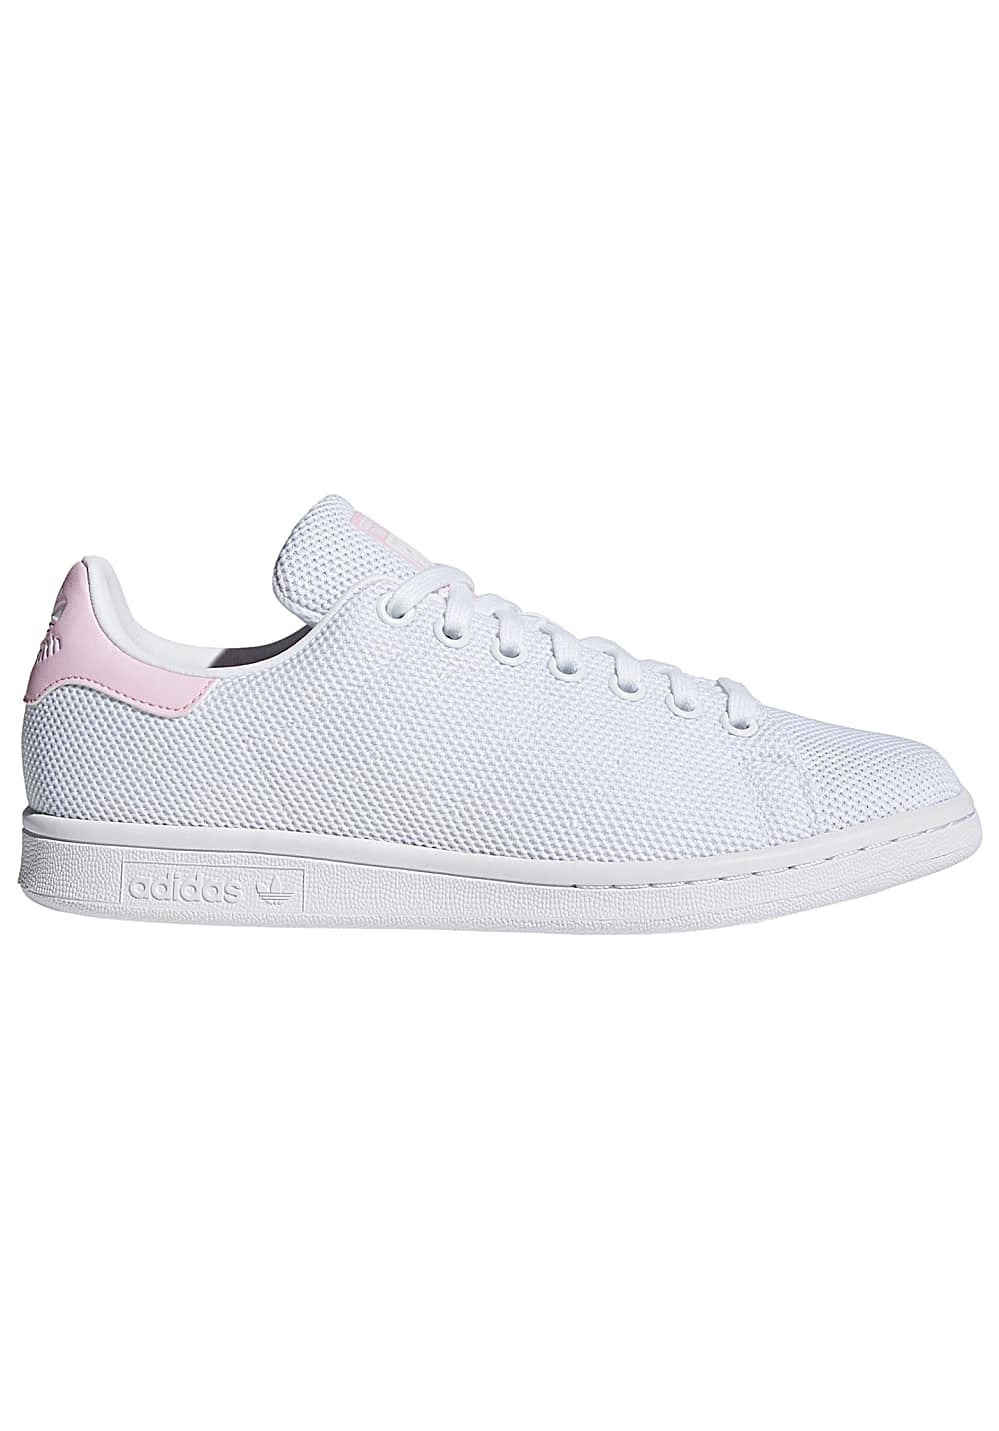 ADIDAS ORIGINALS Stan Smith - Sneakers voor Dames - Wit ...